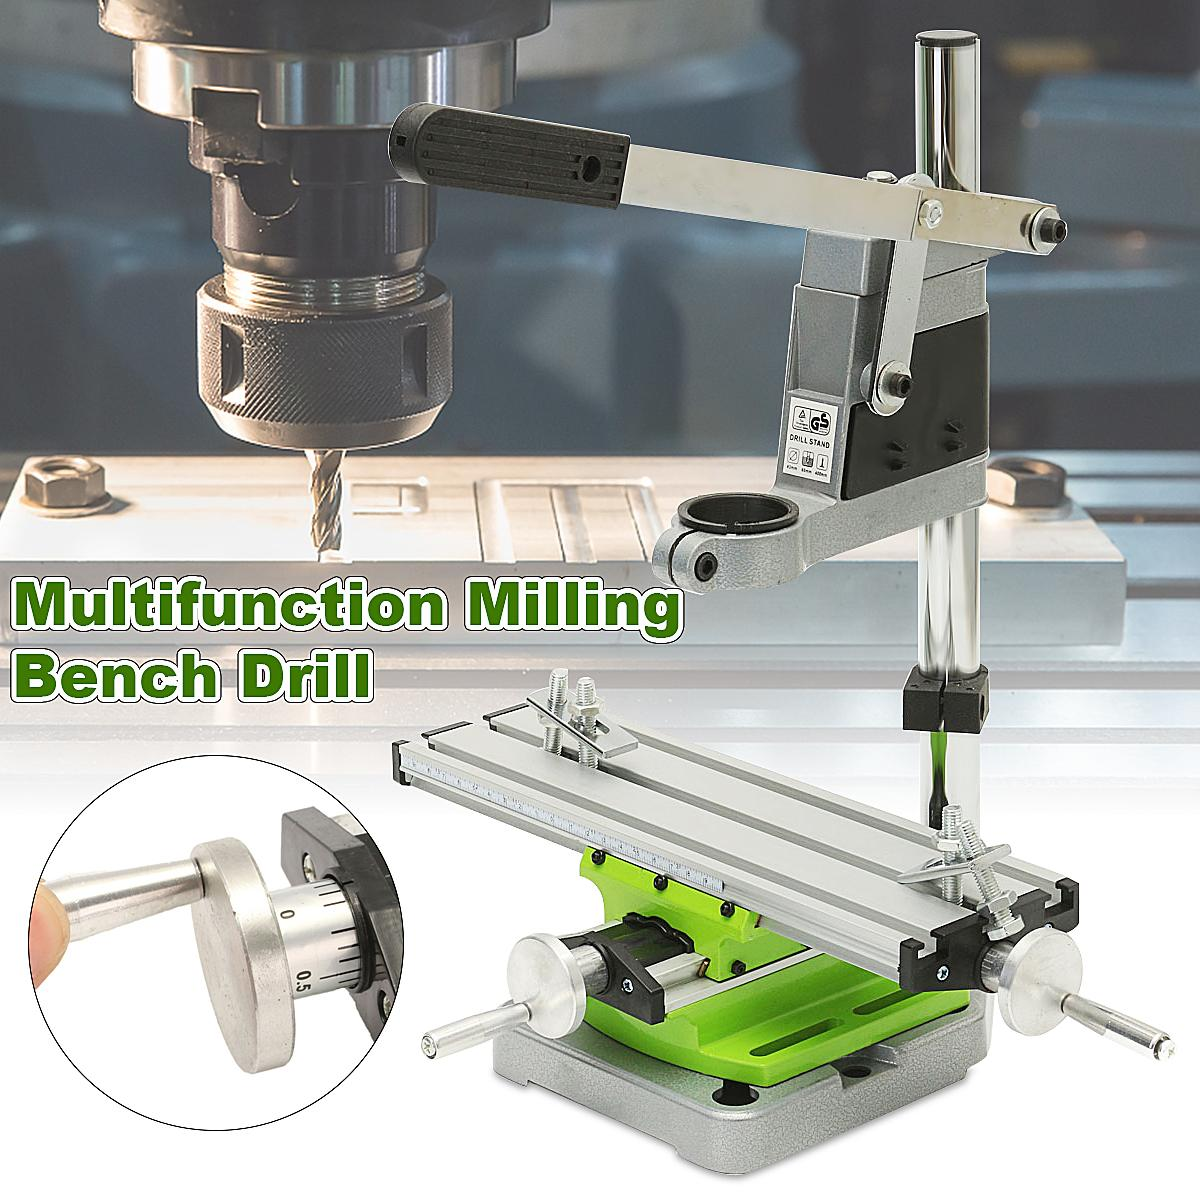 Multifunction Milling Machine Miniature High Precision Bench drill Vise Fixture worktable X Y-axis adjustment Coordinate Table salter air fryer home high capacity multifunction no smoke chicken wings fries machine intelligent electric fryer